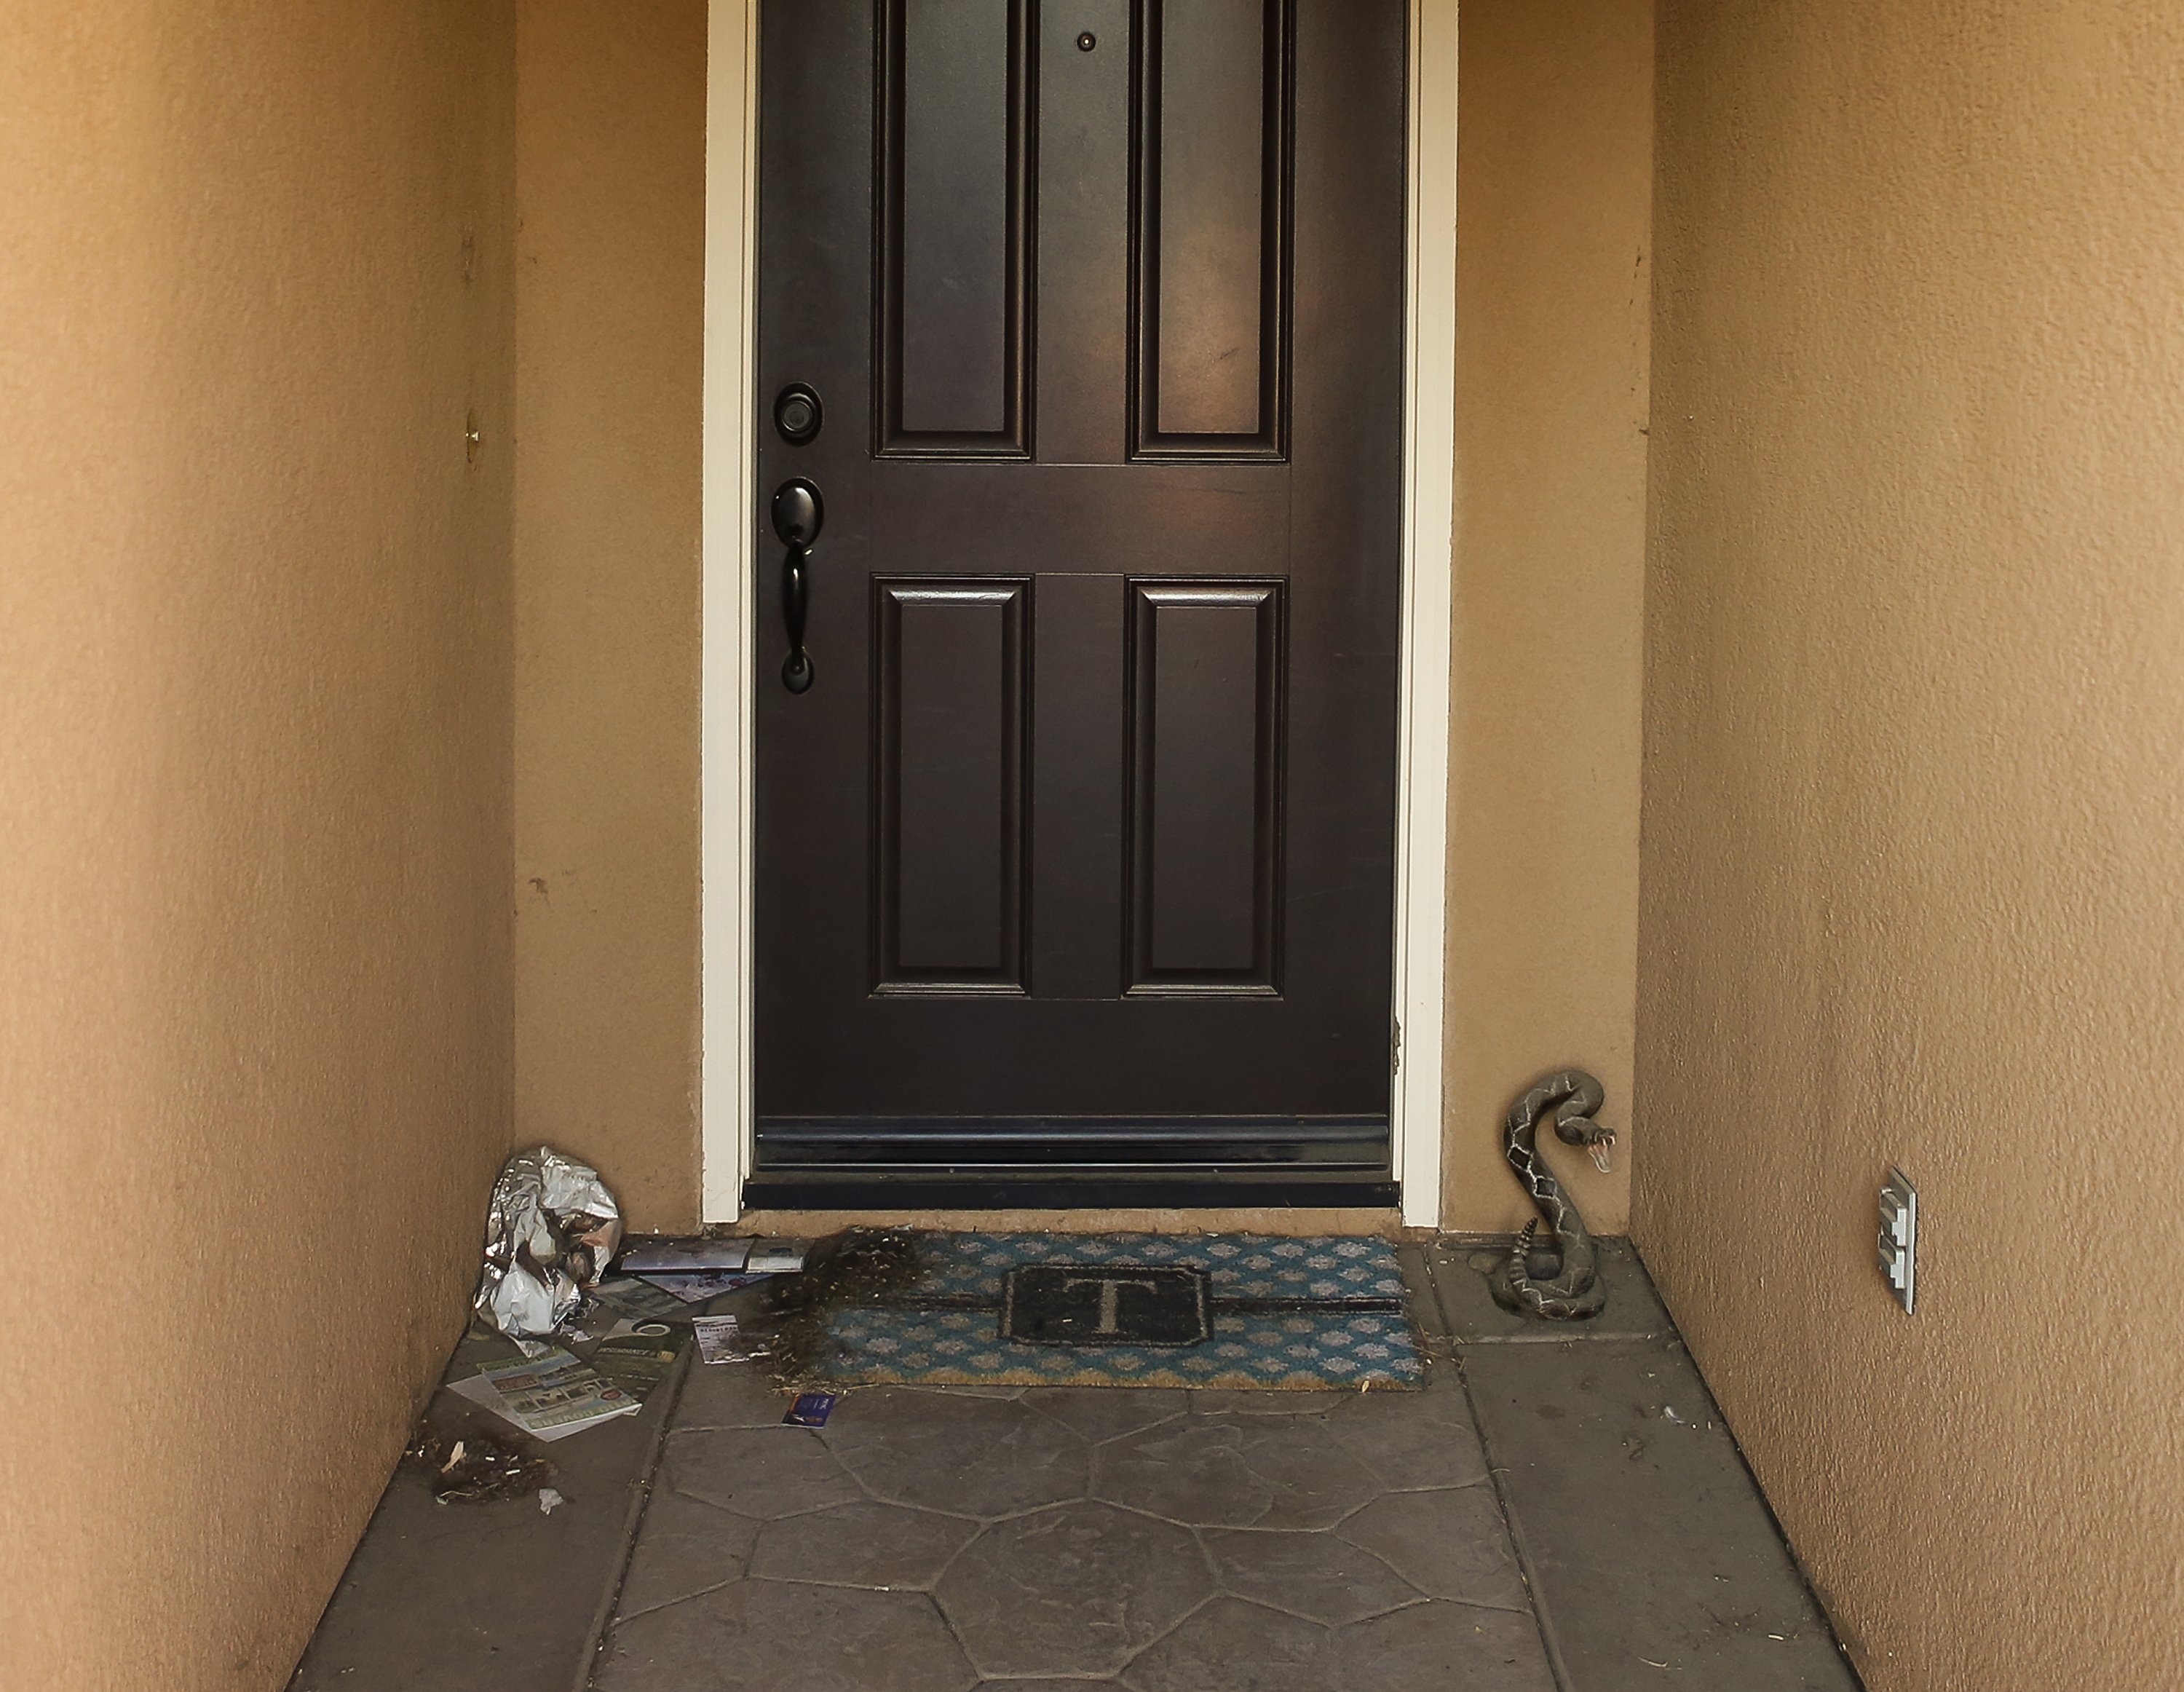 Trash and a fake rattle snake sculpture are seen on the front door of a home where police arrested a couple on Sunday accused of holding 13 children captive in Perris, Calif., Thursday, Jan. 18, 2018. The parents of 13 children and young adults have pleaded not guilty in a California court to numerous charges that they tortured and abused the siblings for years. David and Louise Turpin were each ordered held on $12 million bail after entering their pleas Thursday and were scheduled to return to court on Feb. 23. (AP Photo/Damian Dovarganes)